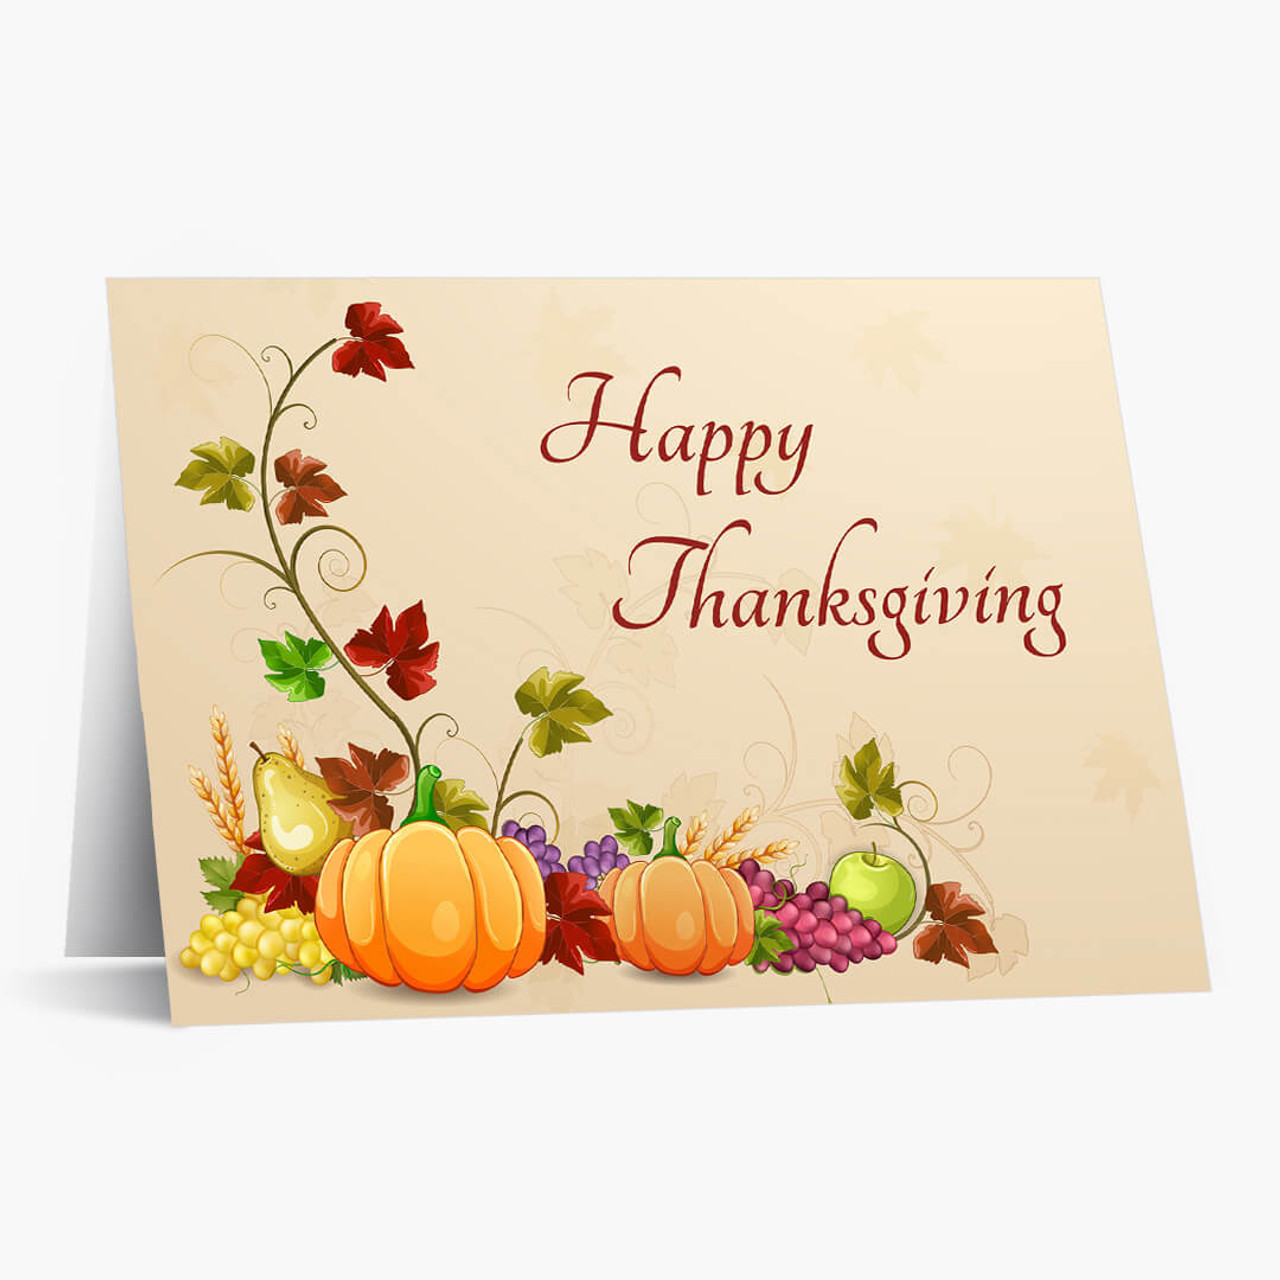 Sweet Autumn Wishes Thanksgiving Card